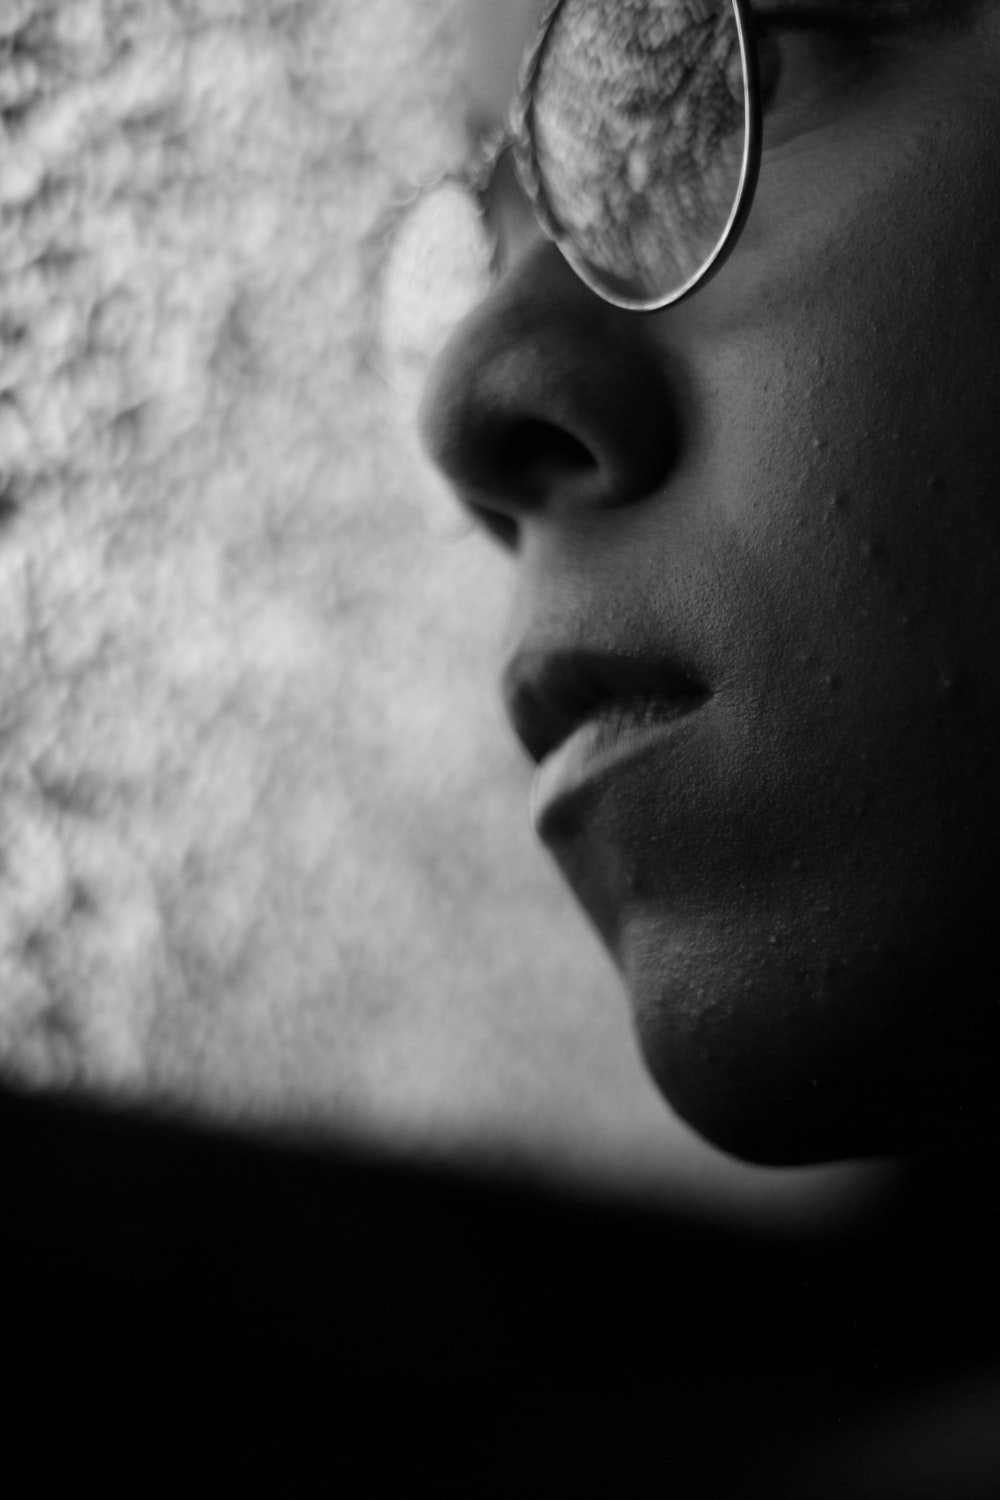 grayscale photo of person wearing eyeglasses looking at glass